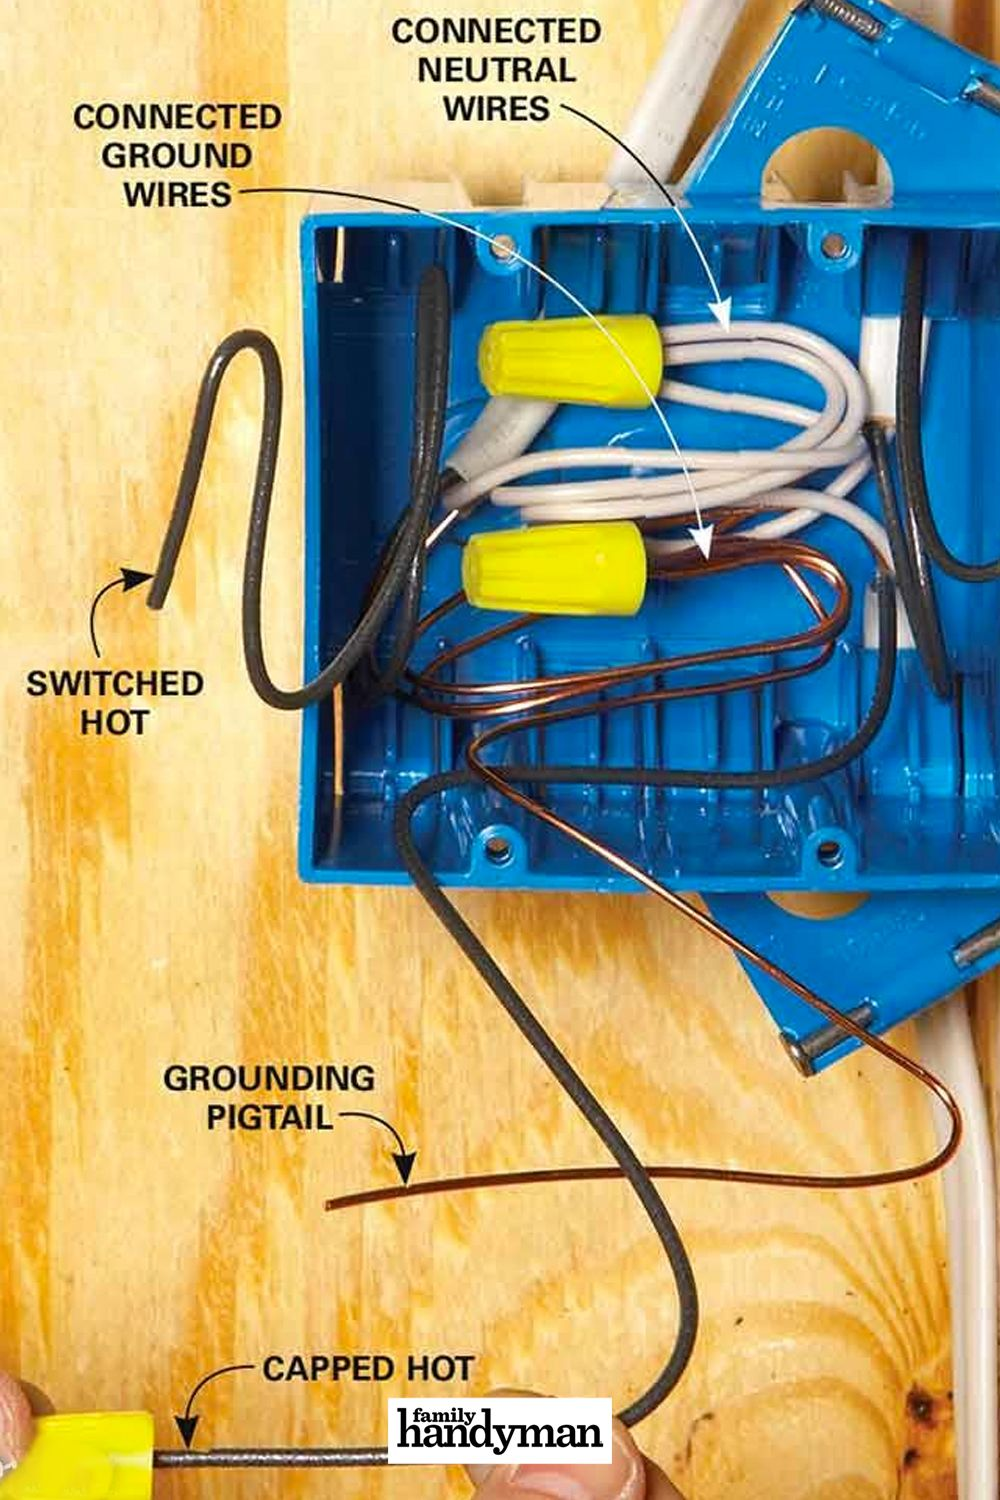 12 Tips For Easier Home Electrical Wiring In 2020 Home Electrical Wiring Diy Electrical Electrical Wiring